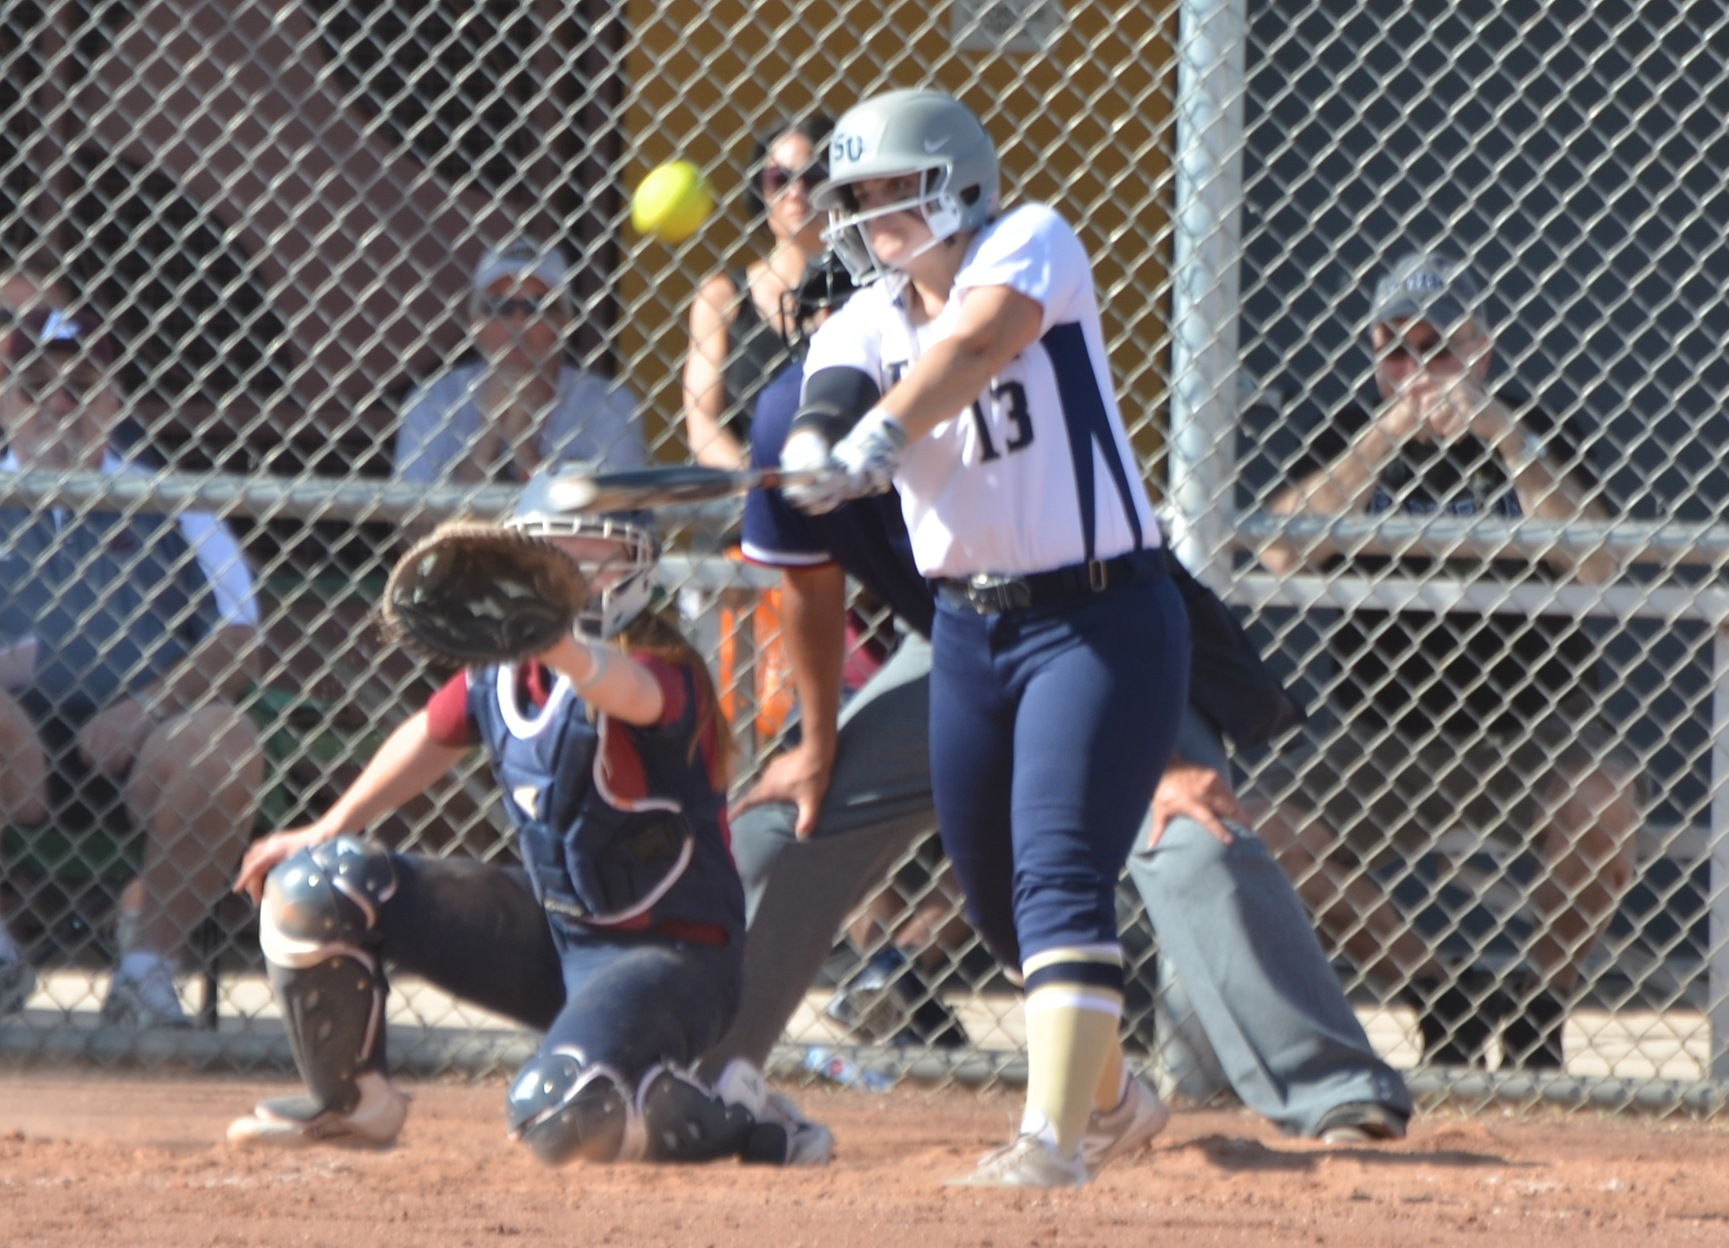 CHAMPIONSHIP BOUND: Softball Eliminates Albertus Magnus in Extras, 9-2